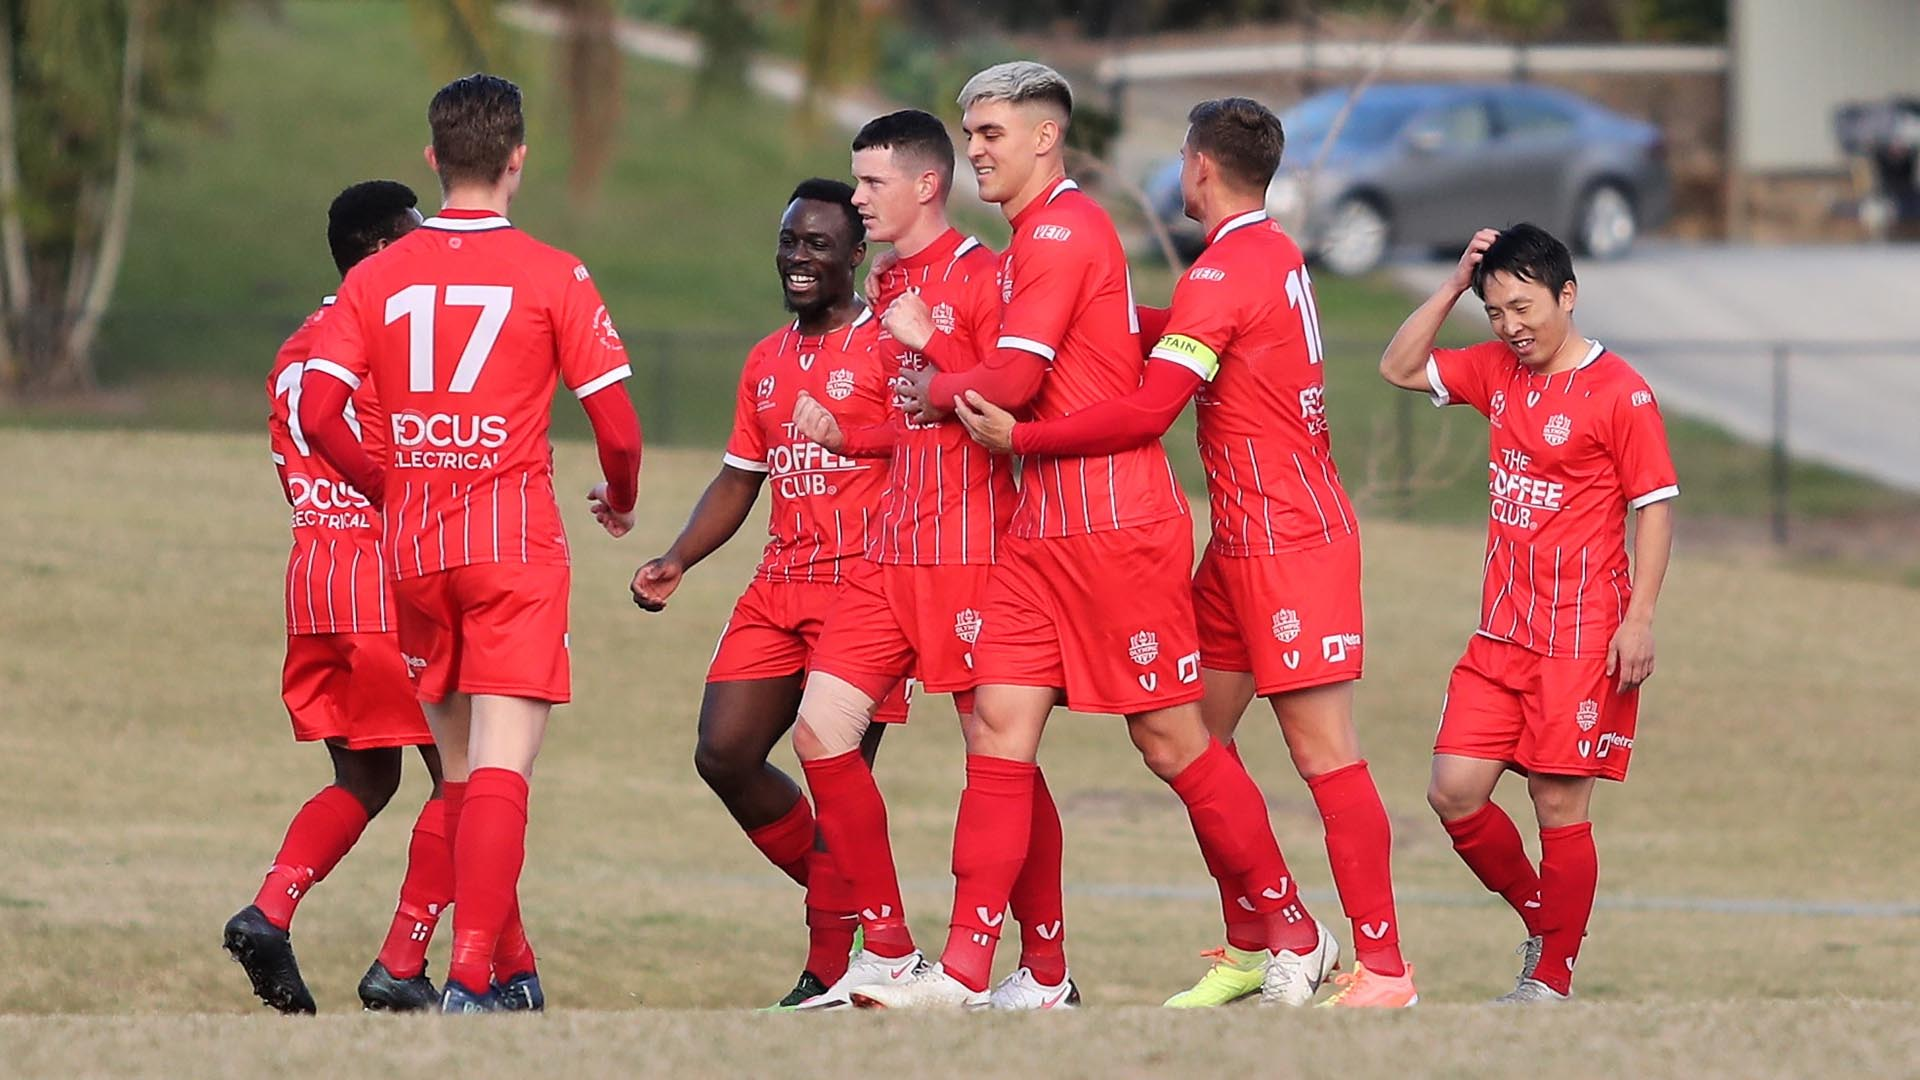 Match Report: Gold Coast United 0-1 Olympic